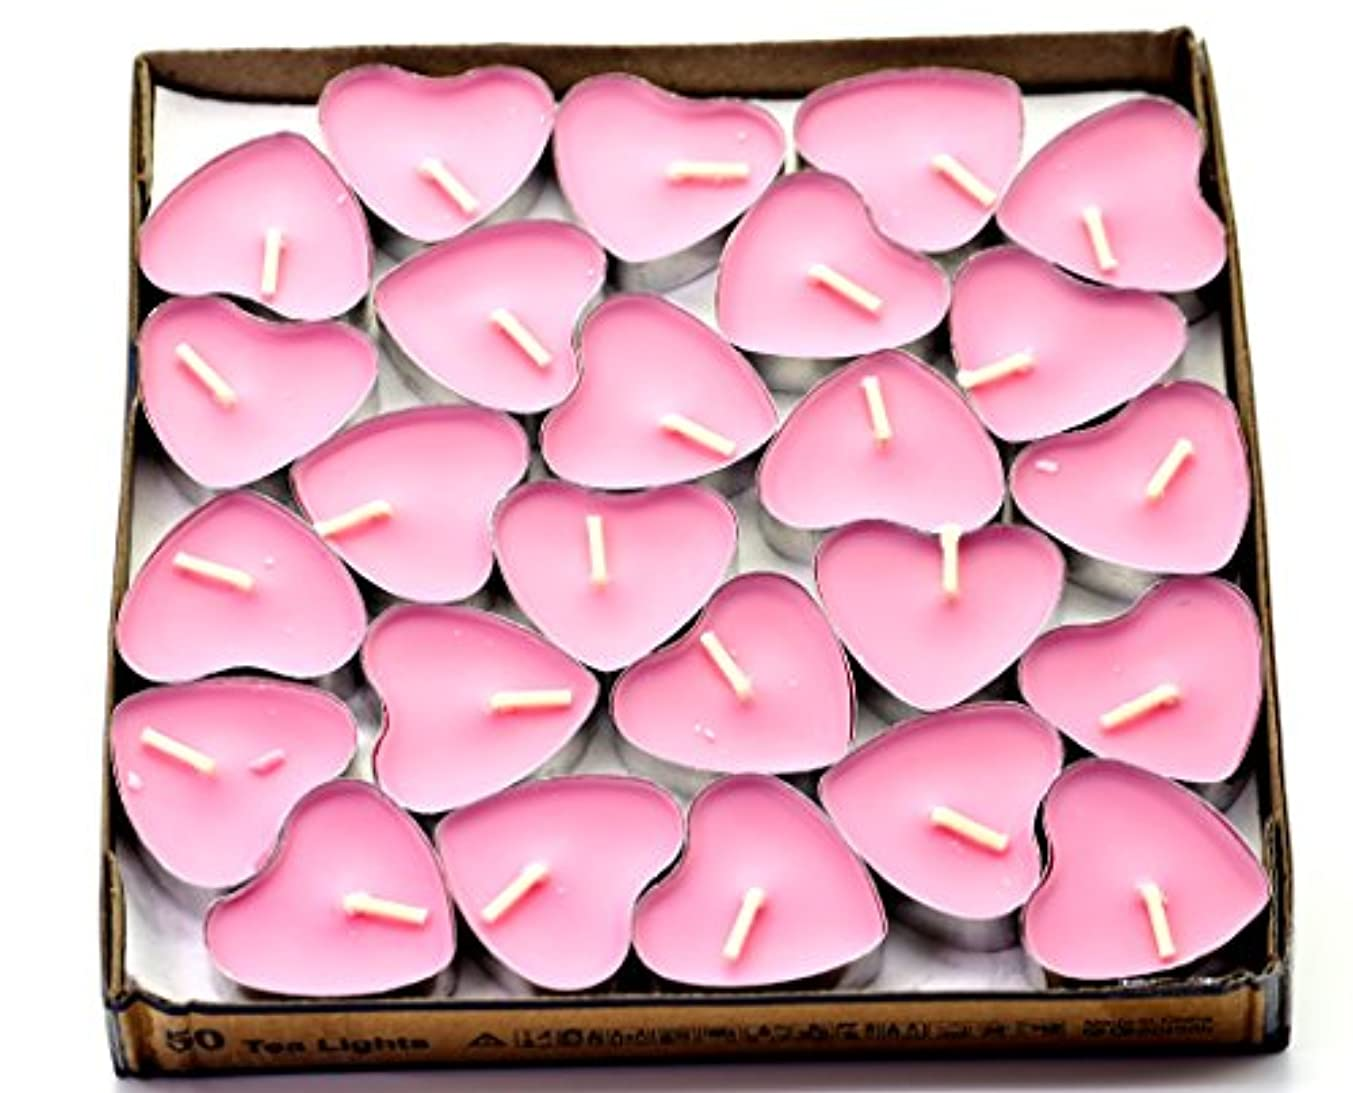 始まりヤギ成功する(Pink(rose)) - Creationtop Scented Candles Tea Lights Mini Hearts Home Decor Aroma Candles Set of 50 pcs mini...